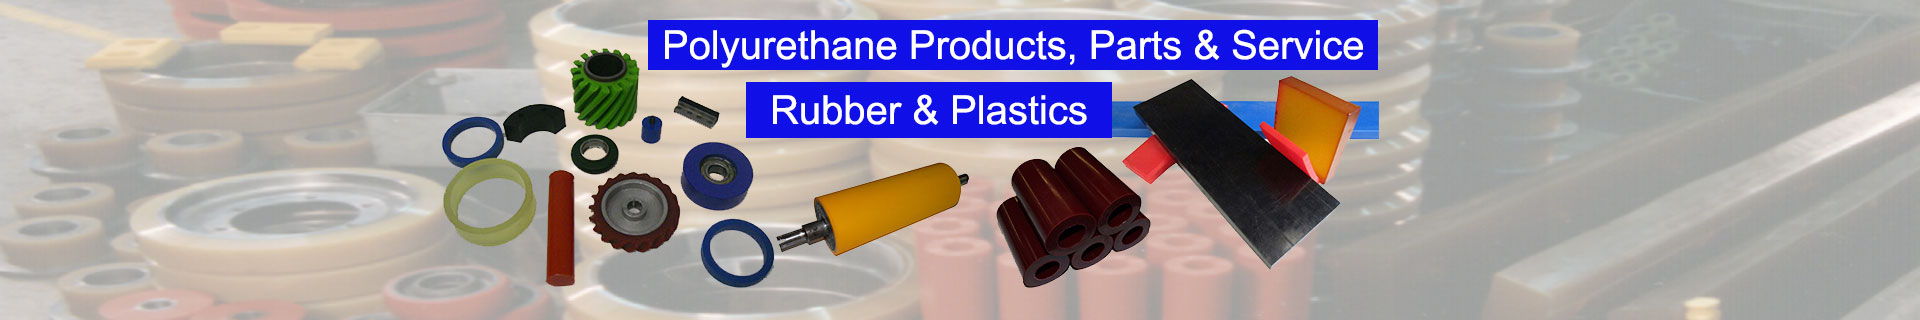 Polyurethane Products, Parts and Service